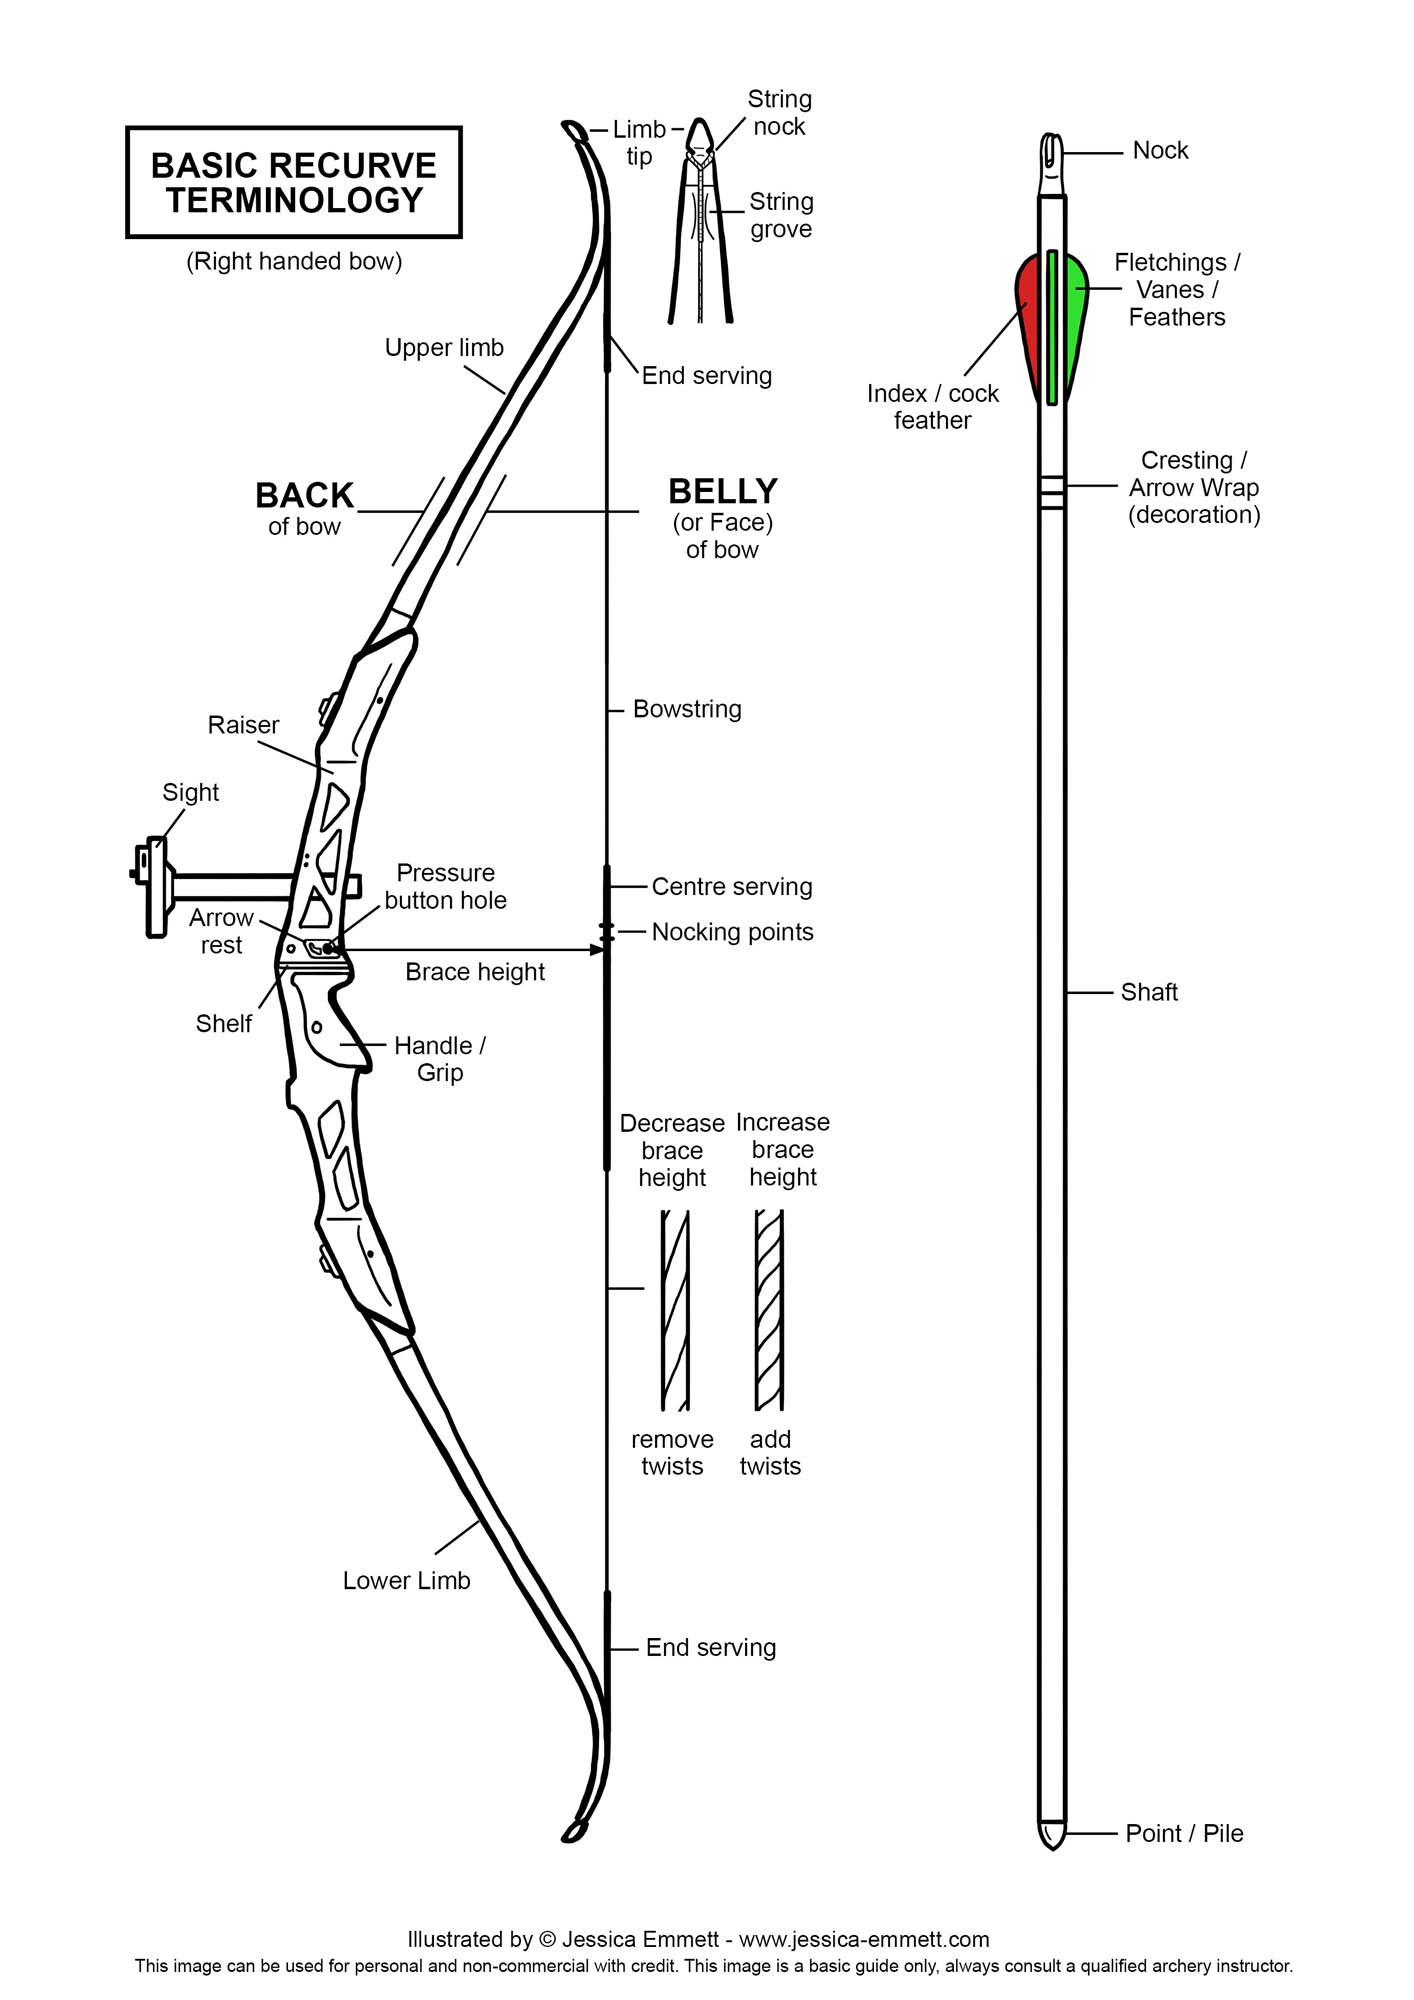 Basic Recurve Parts Name Right Handed Bow Structure